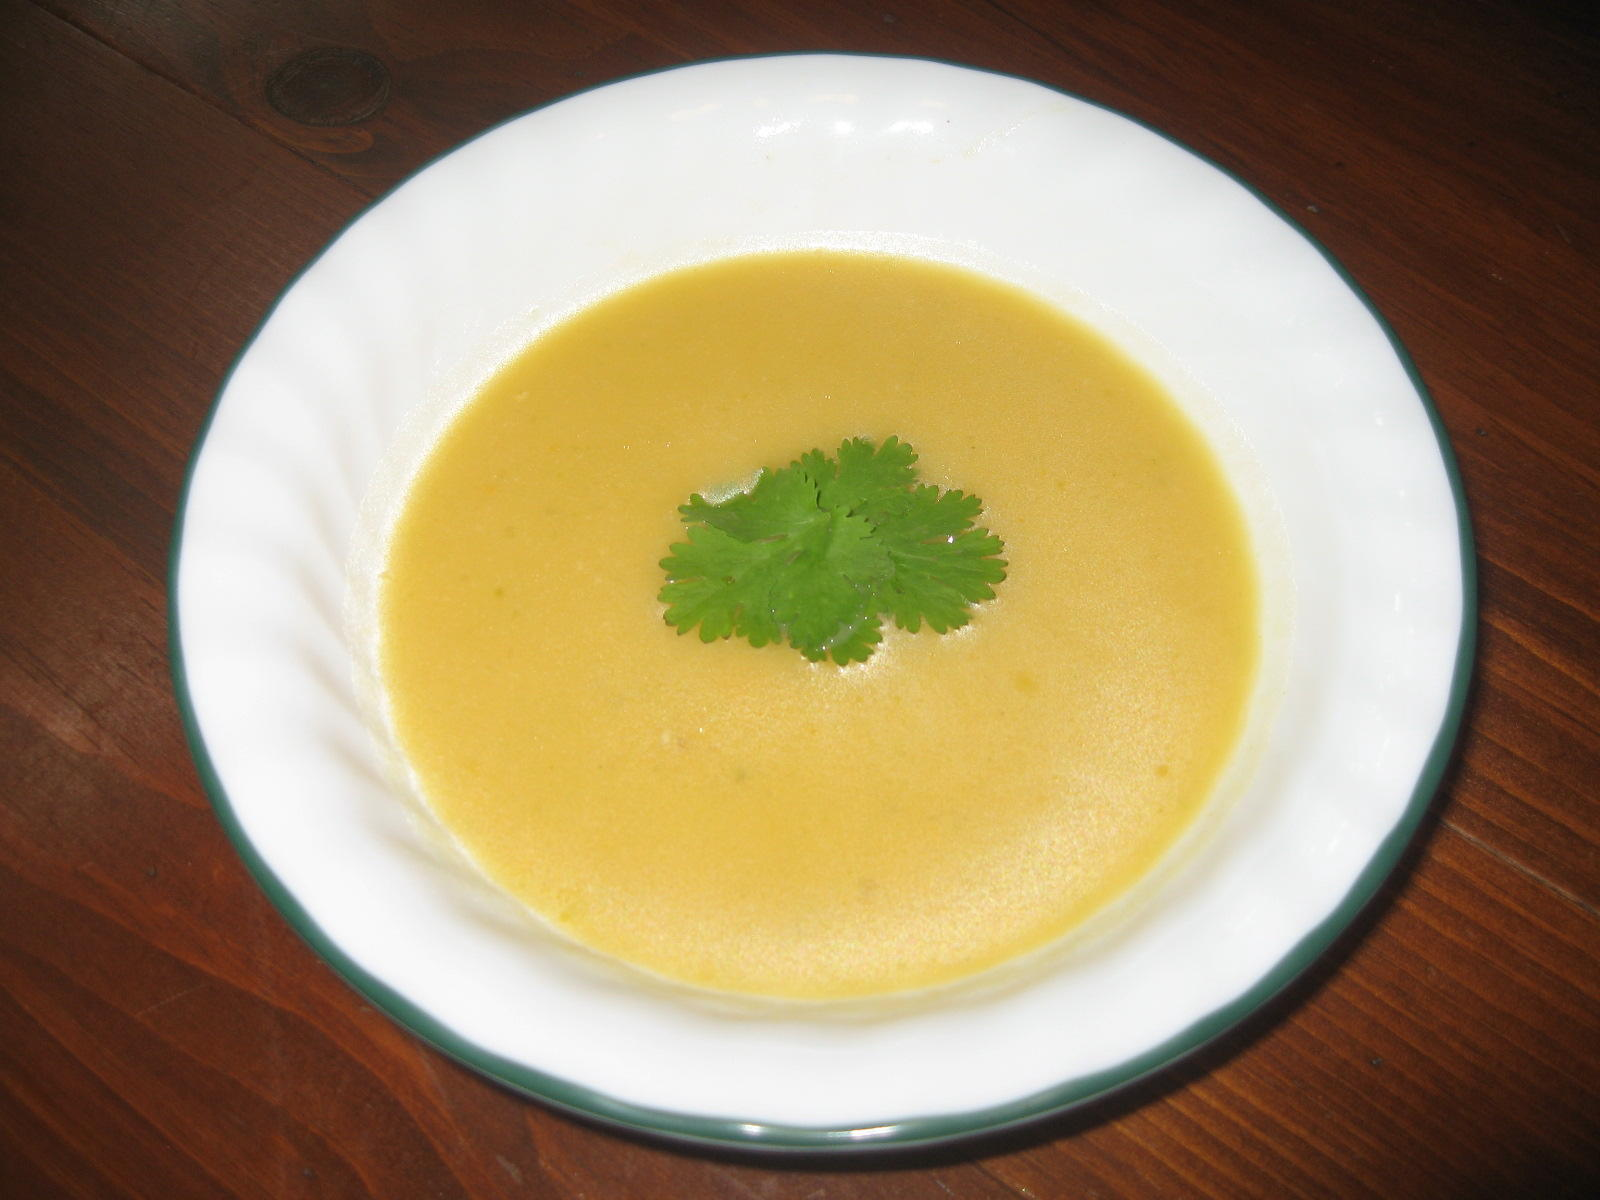 ... cream of celery soup cream of celery soup celery cream soup cream of